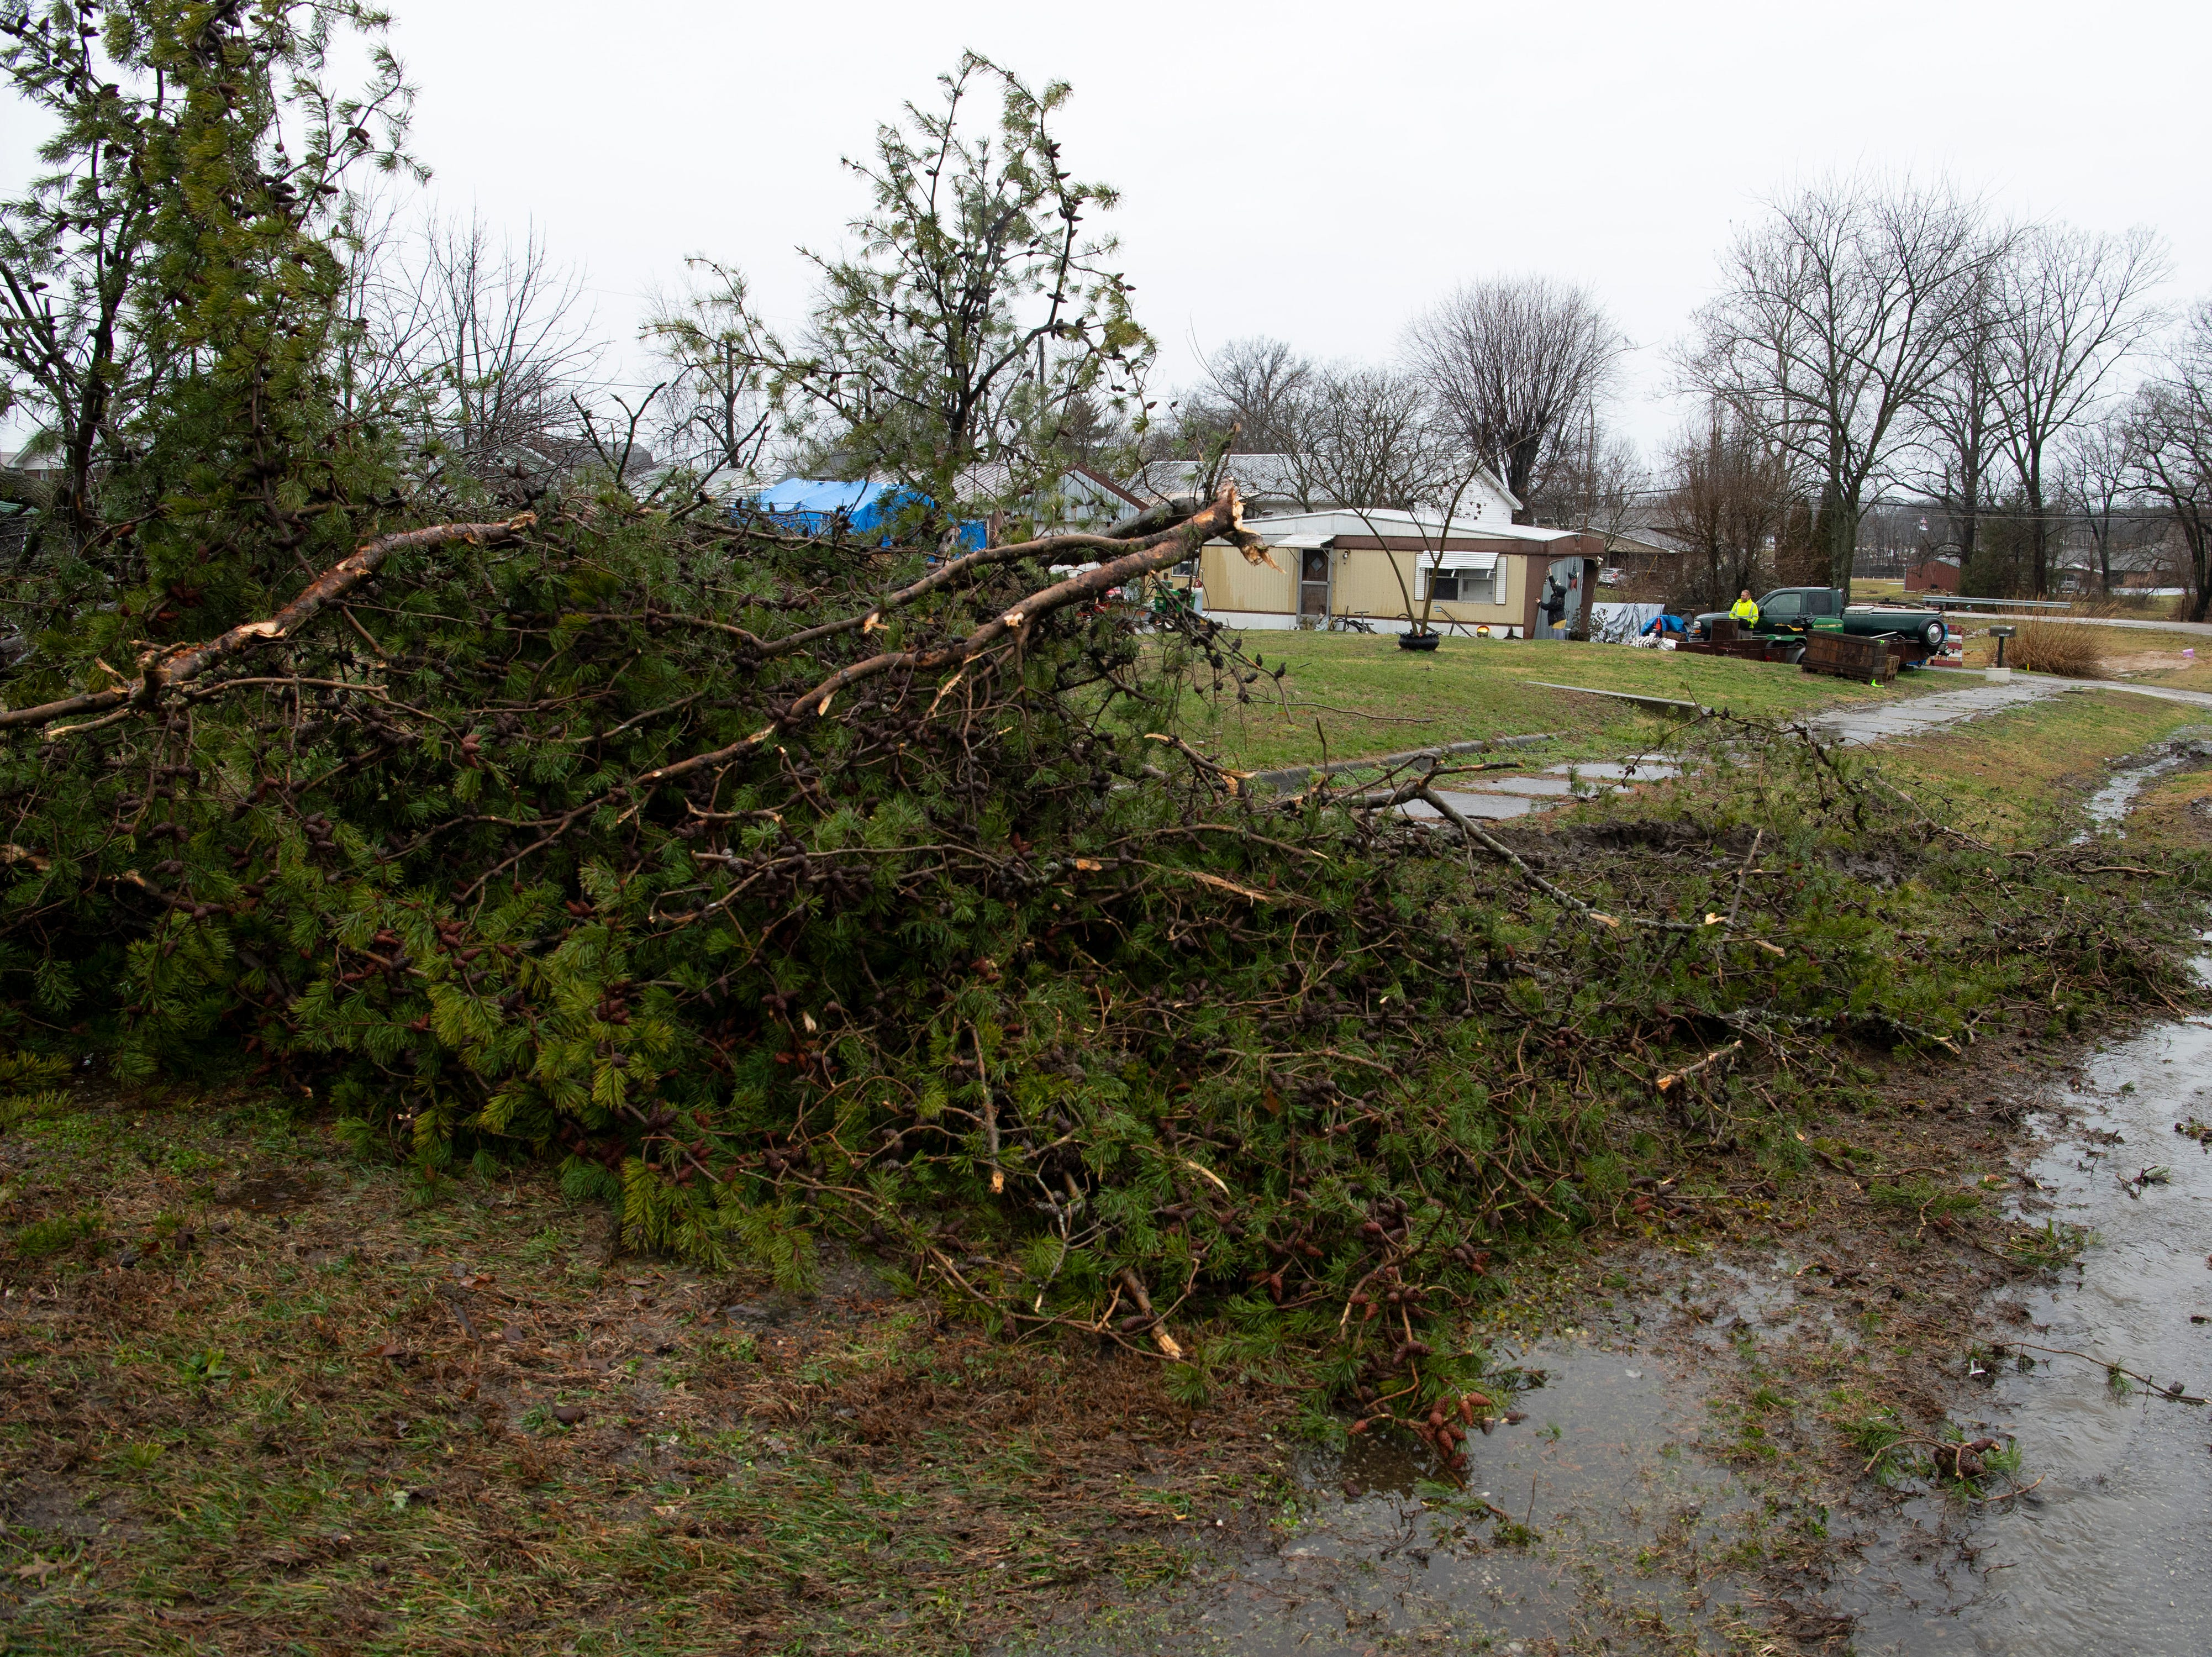 Tracy Tinsley of Oakland City, Ind., was awakened from her sleep by a storm which downed two of their trees Thursday morning. She and her husband, Jeff, don't know whether it was a tornado or just strong winds, but the storm left most of their plastic riding toys parked perfectly in line while demolishing the massive black walnut and pine trees.